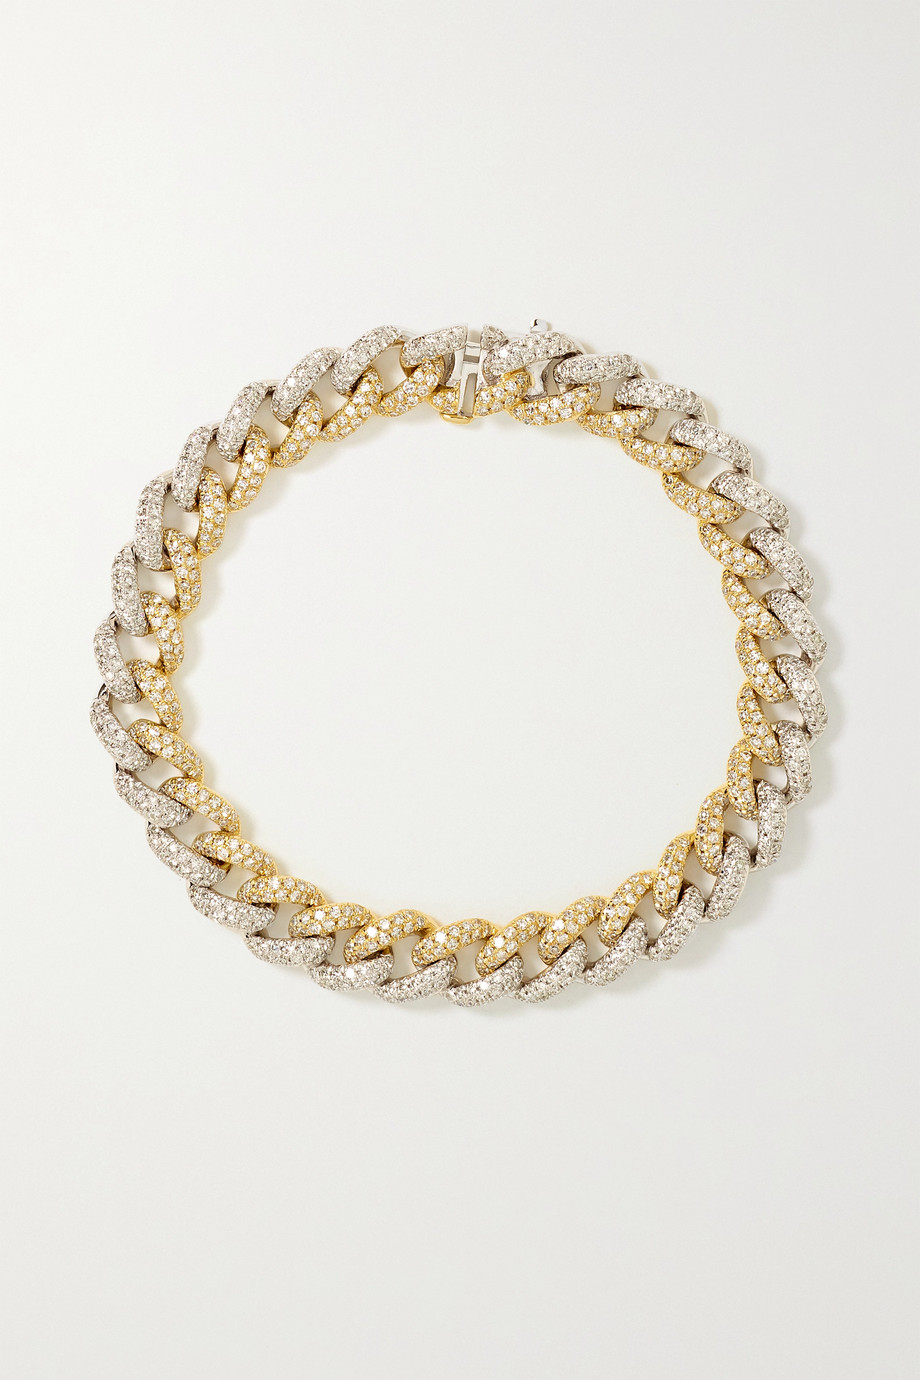 SHAY Bracelet en or jaune et blanc 18 carats et diamants